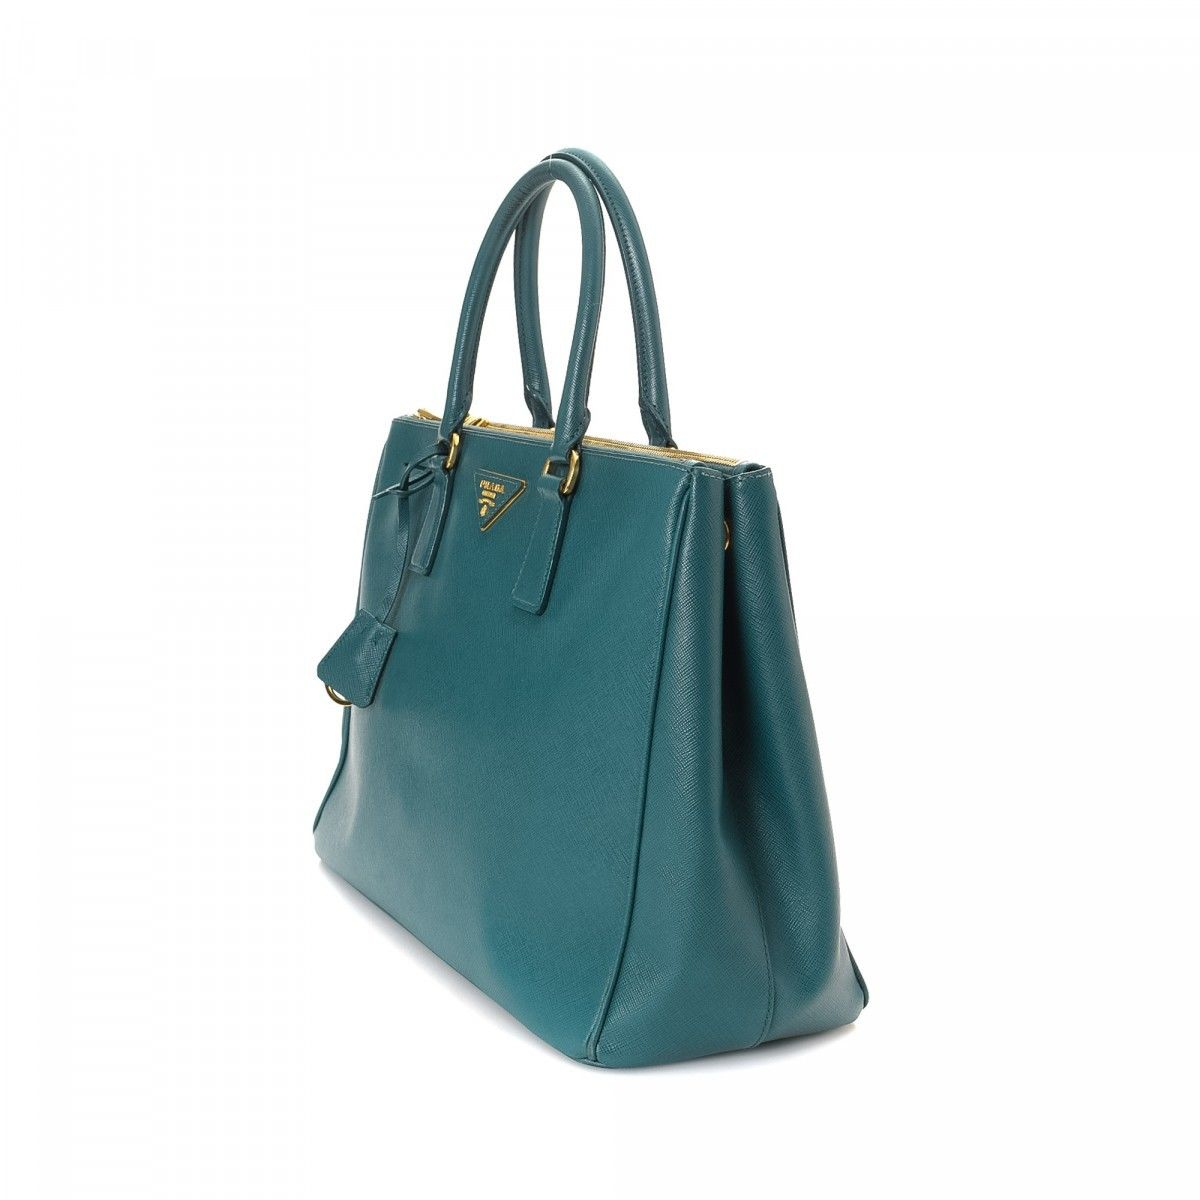 Saffiano Galleria Bag. Free Shipping. LXRandCo guarantees this is an authentic  vintage Prada Galleria Bag handbag. This chic pocketbook in beautiful teal  ... 9a2f4bbd56fe3